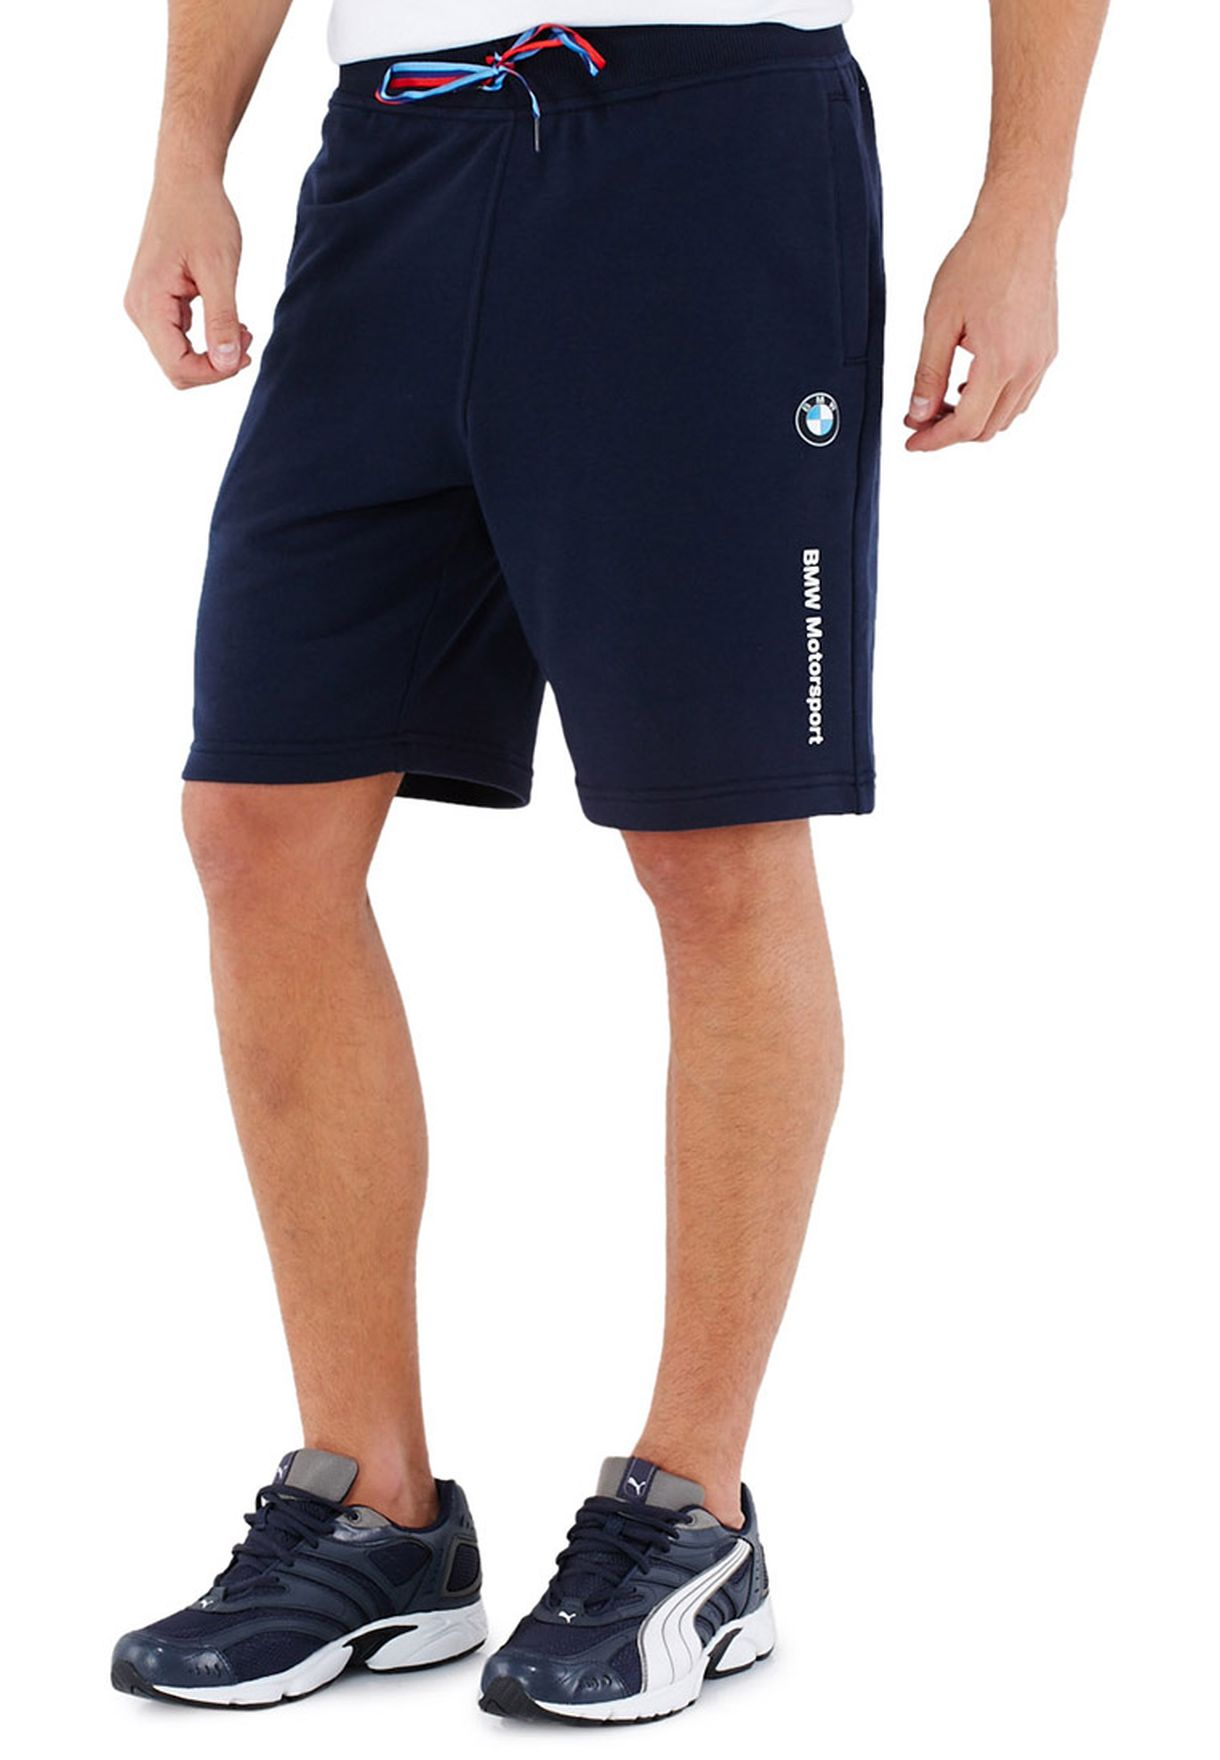 80f6f3c30c978 BMW Sweat Shorts